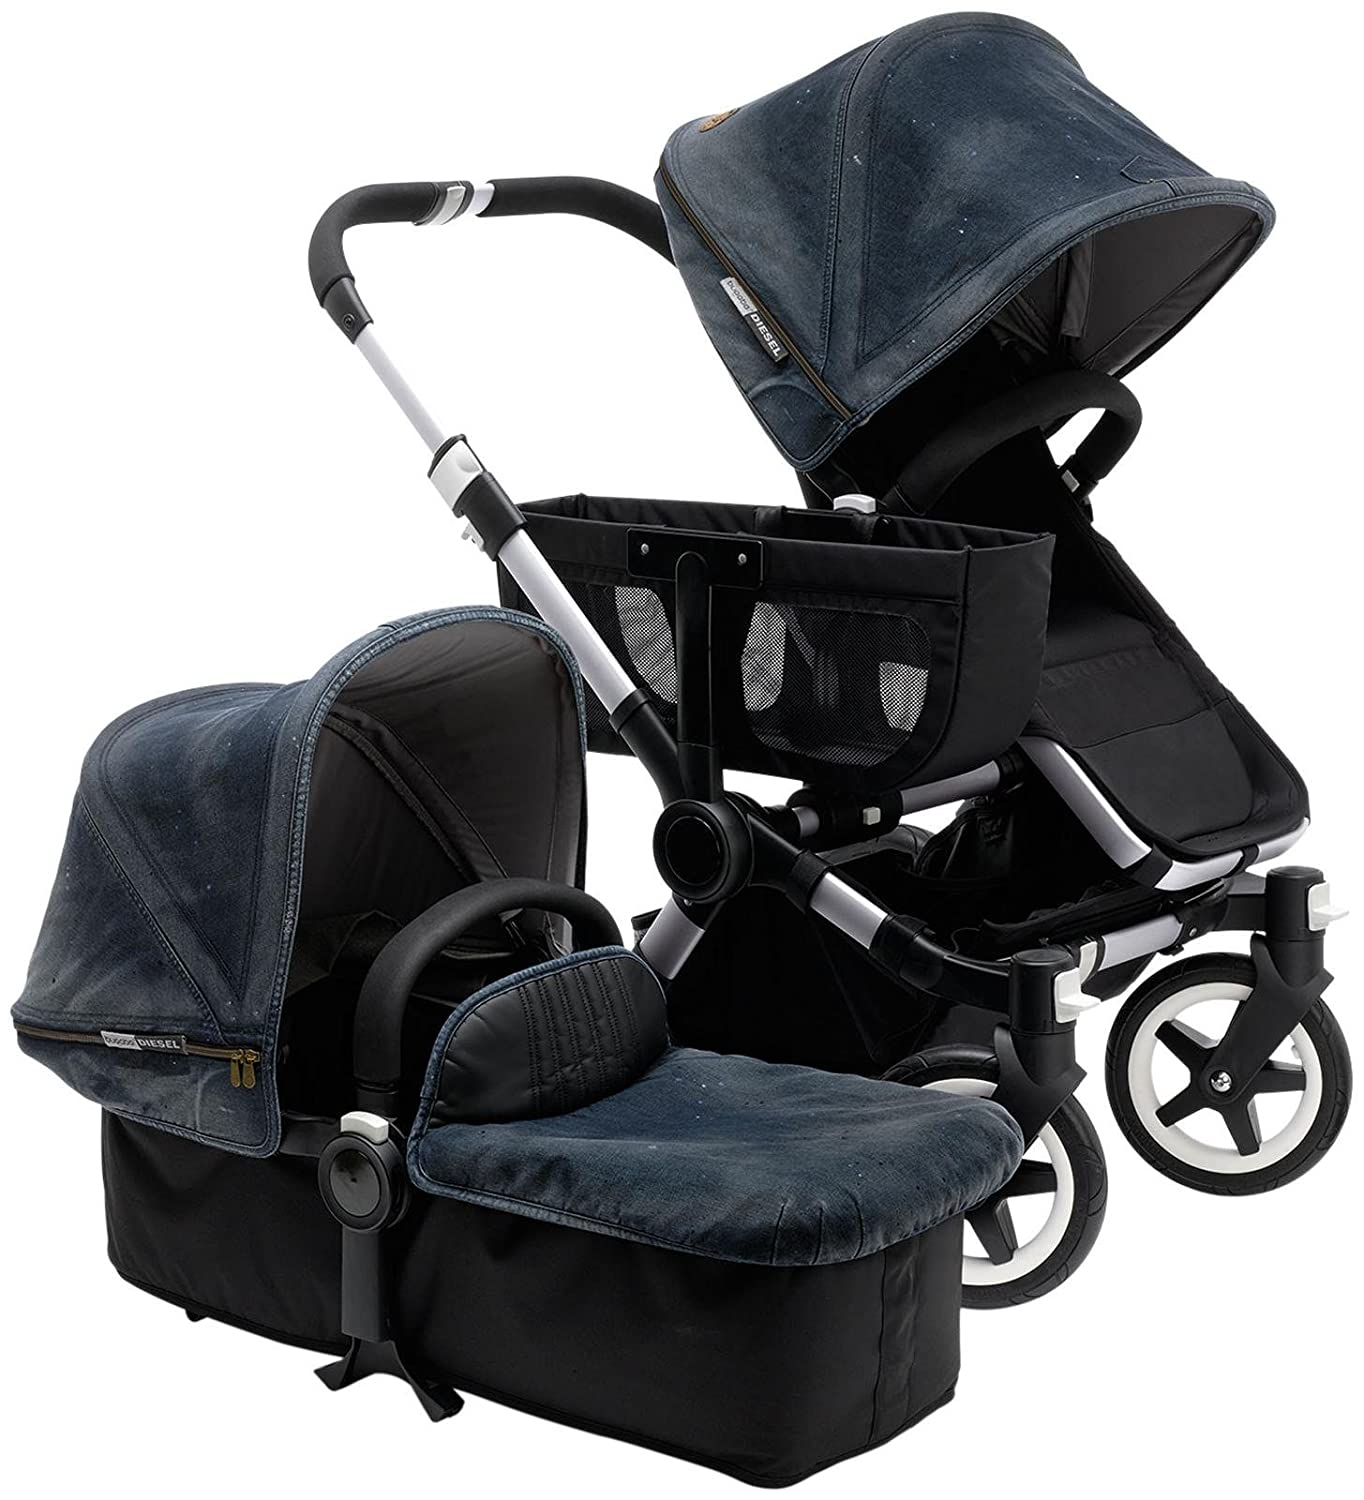 Bugaboo Donkey Tailored Fabrics Set by Diesel 180111DL01